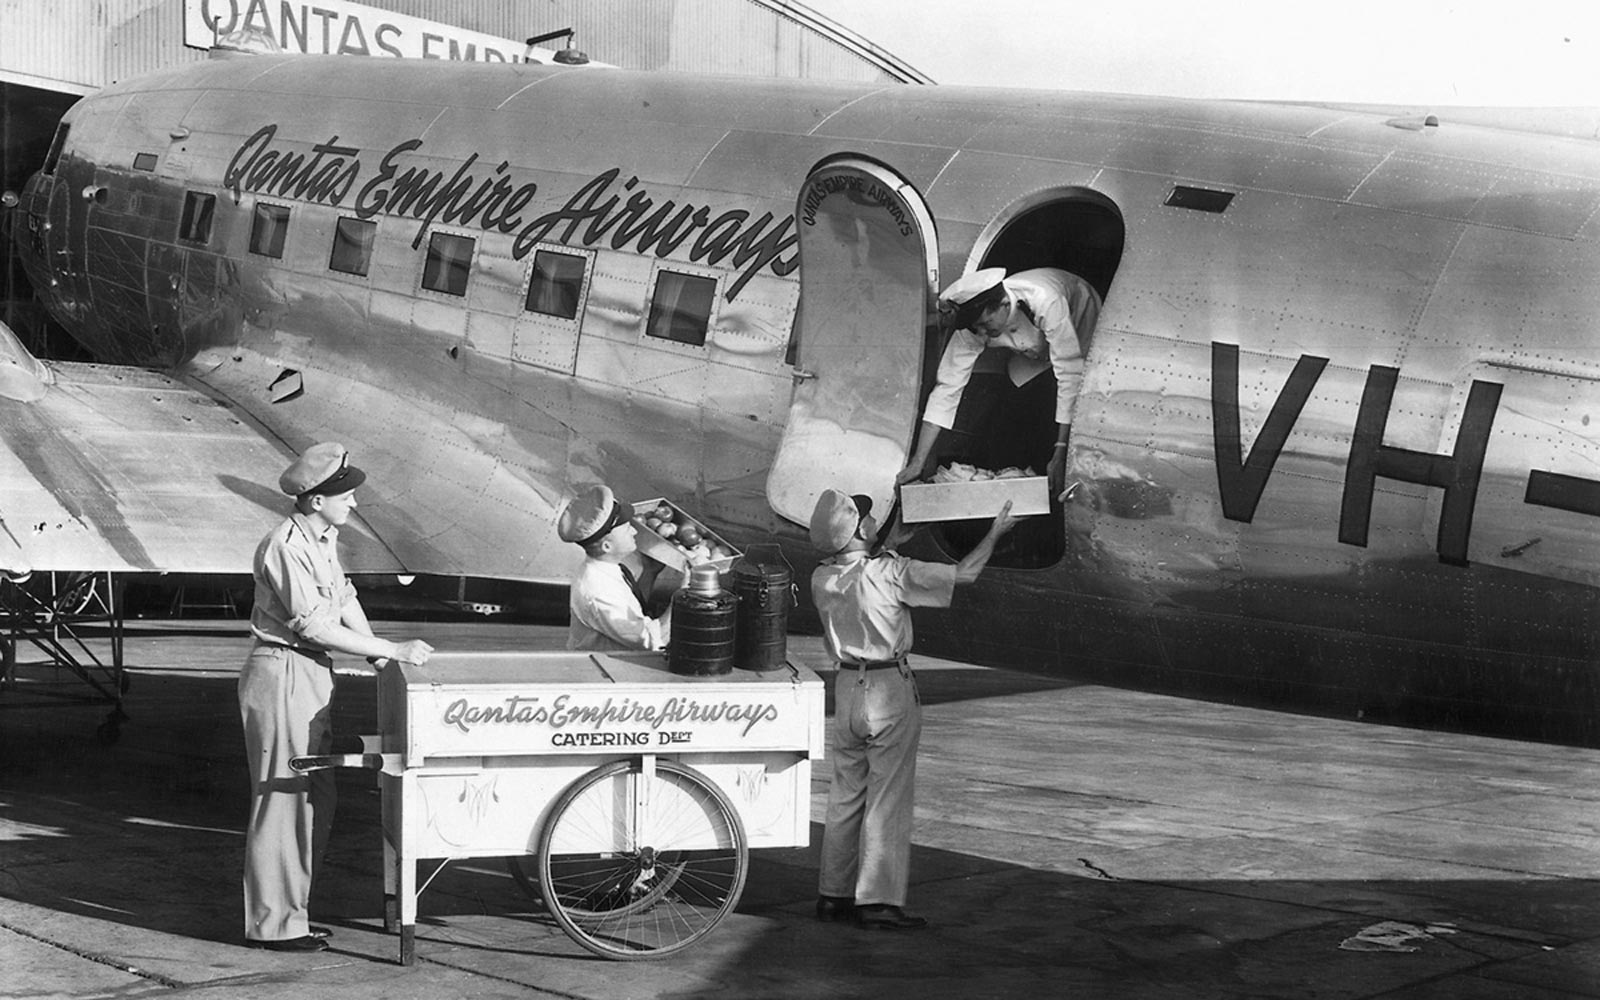 Catering a 1947 Qantas airways flight